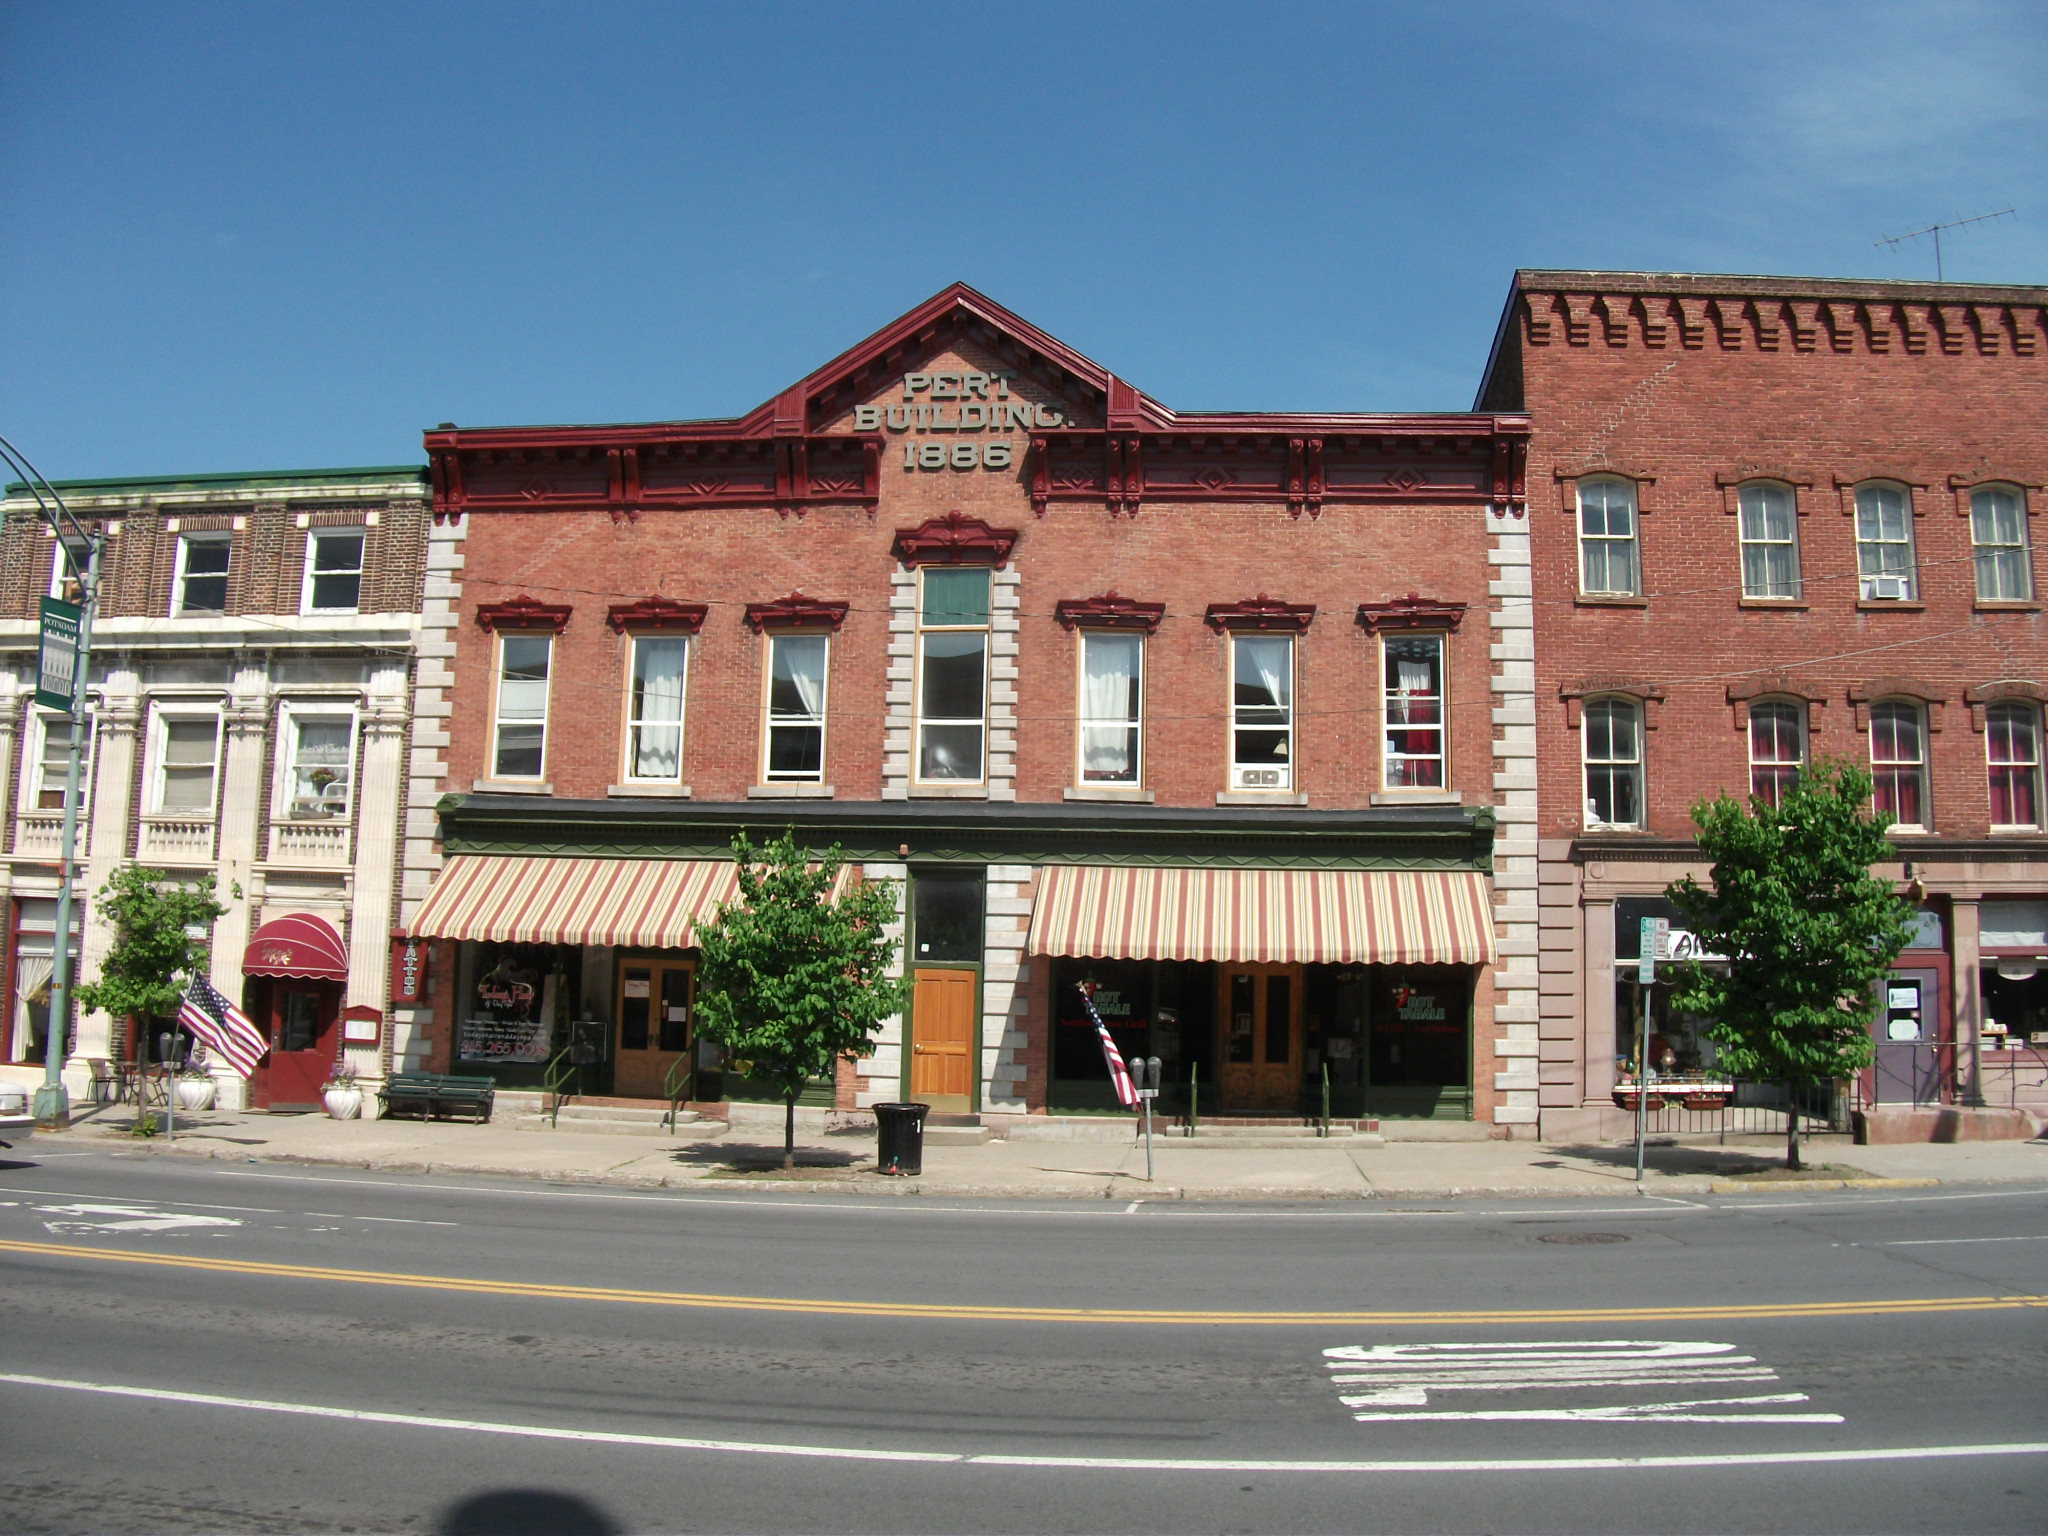 dating potsdam The town of potsdam is located in the adirondack foothills, in the center of st lawrence county, new york we are home to two villages,.